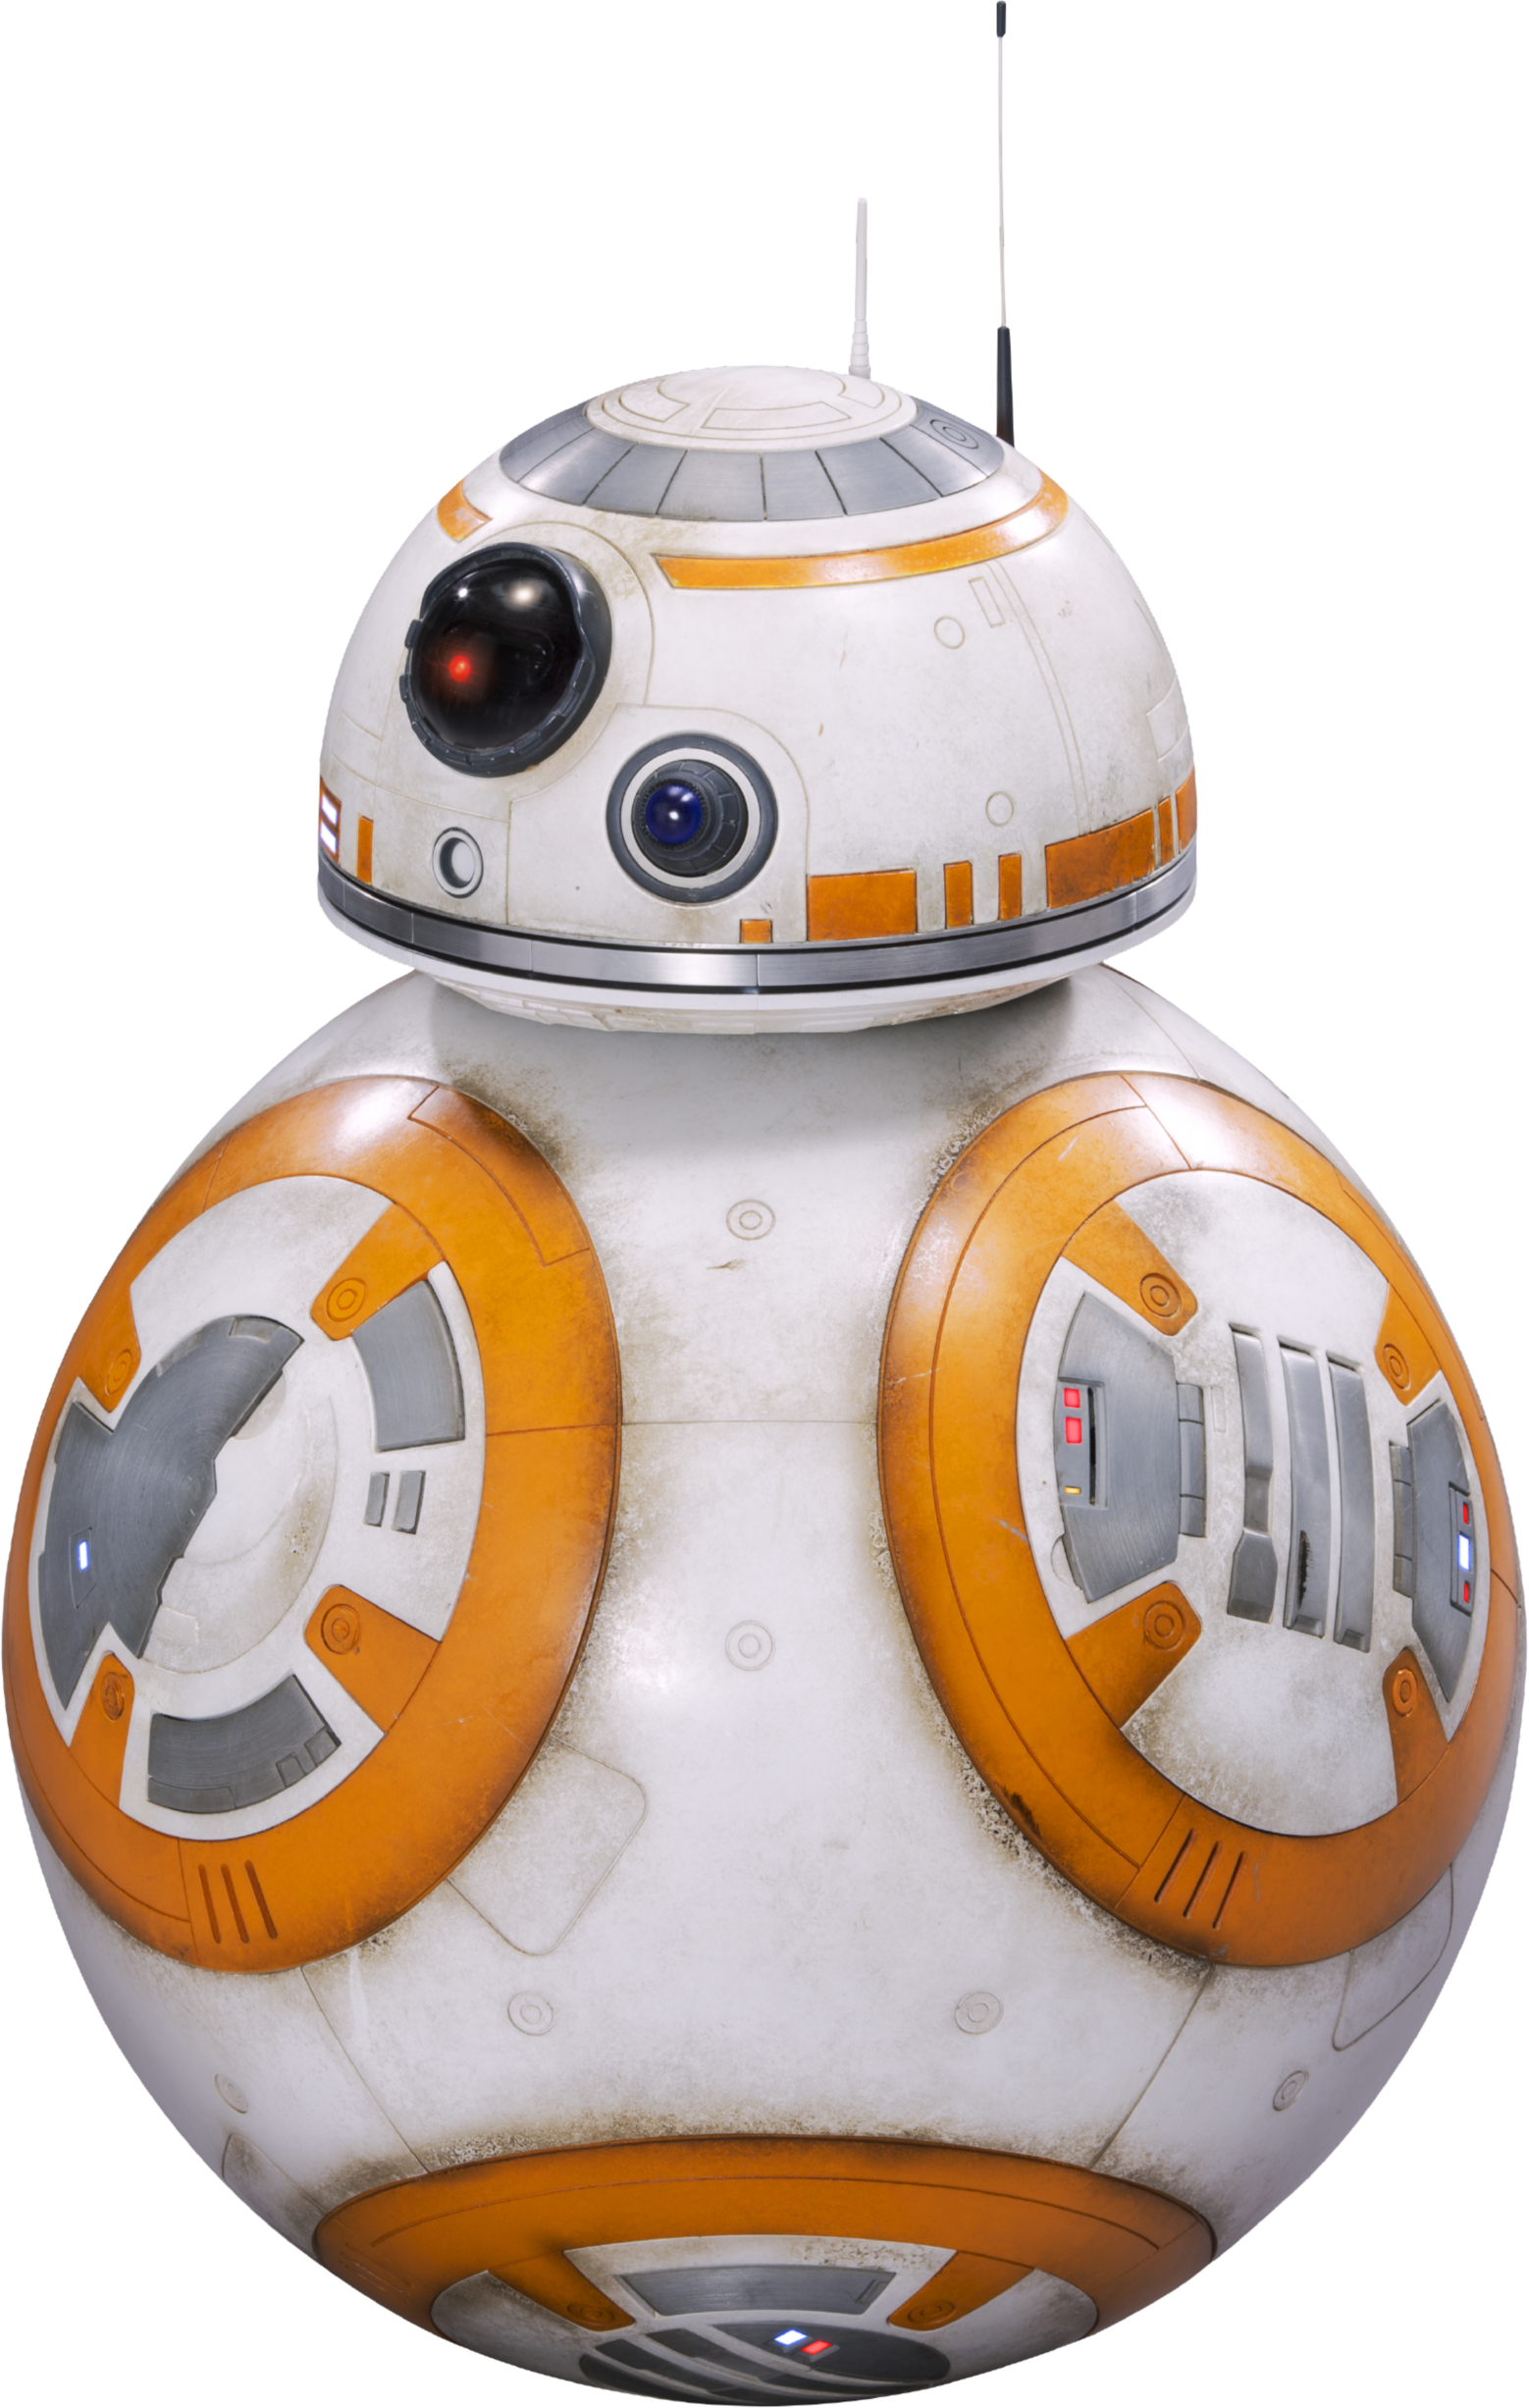 bb8 star wars ep7 the force awakens characters cut out with transparent background_3png 15582453 diy pinterest search